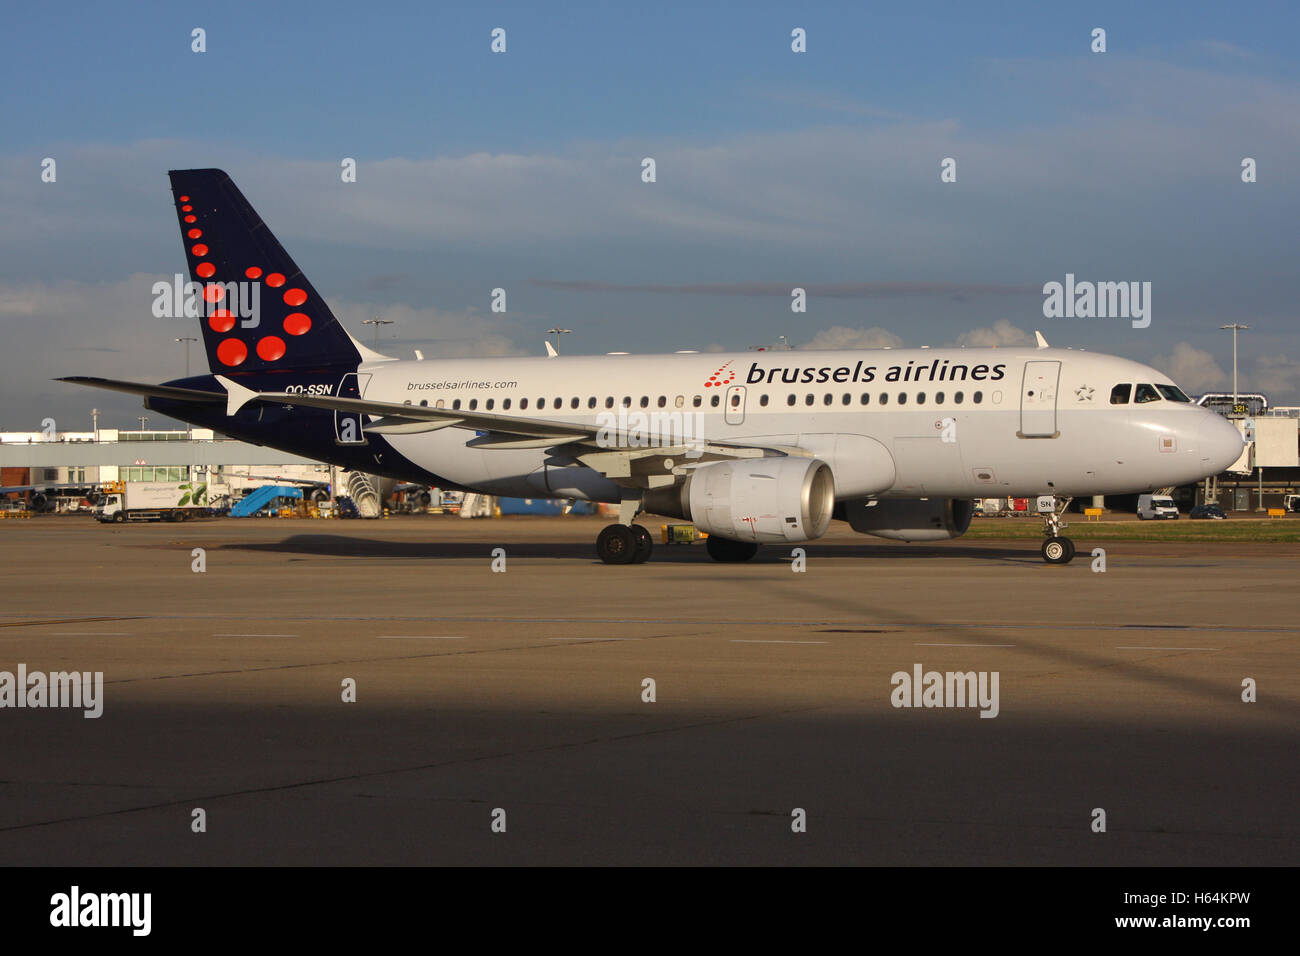 BRUSSELS A319 Stock Photo